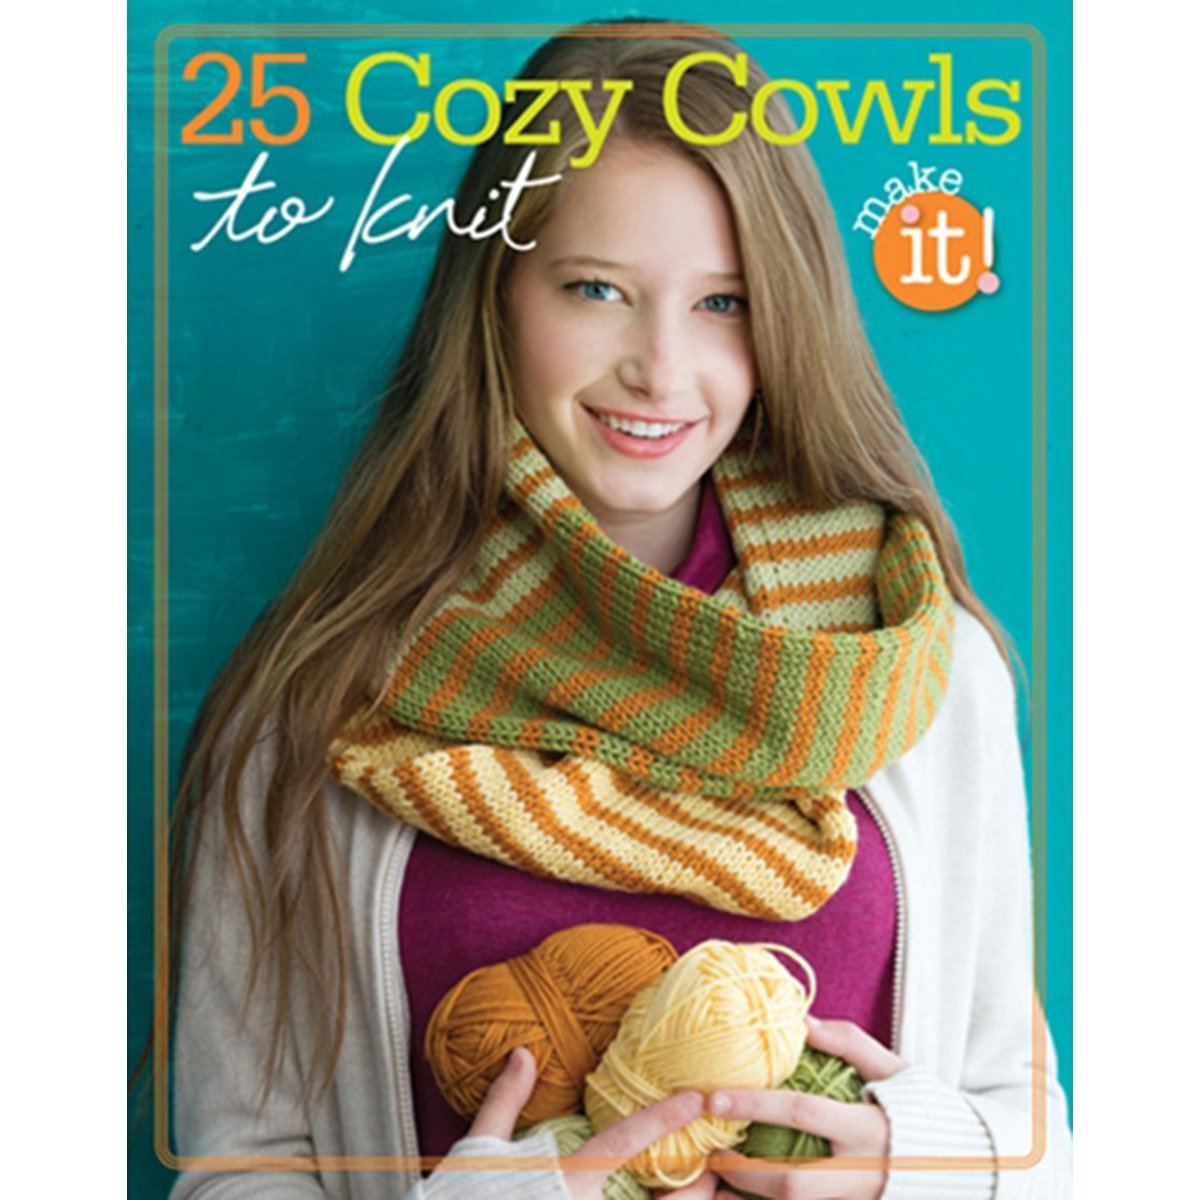 Cozy Cowls (NM-500448)